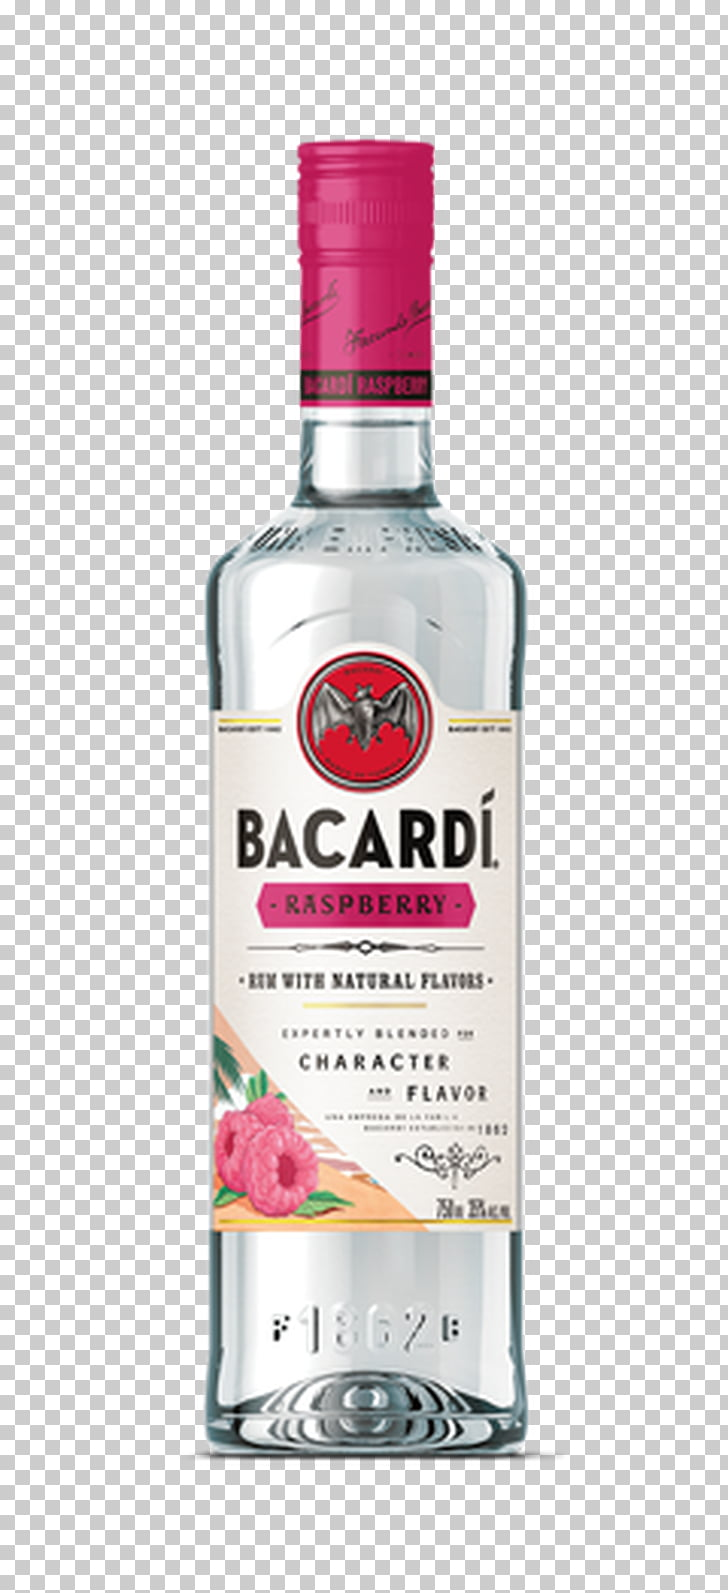 Distilled beverage Light rum Wine Bacardi, wine PNG clipart.